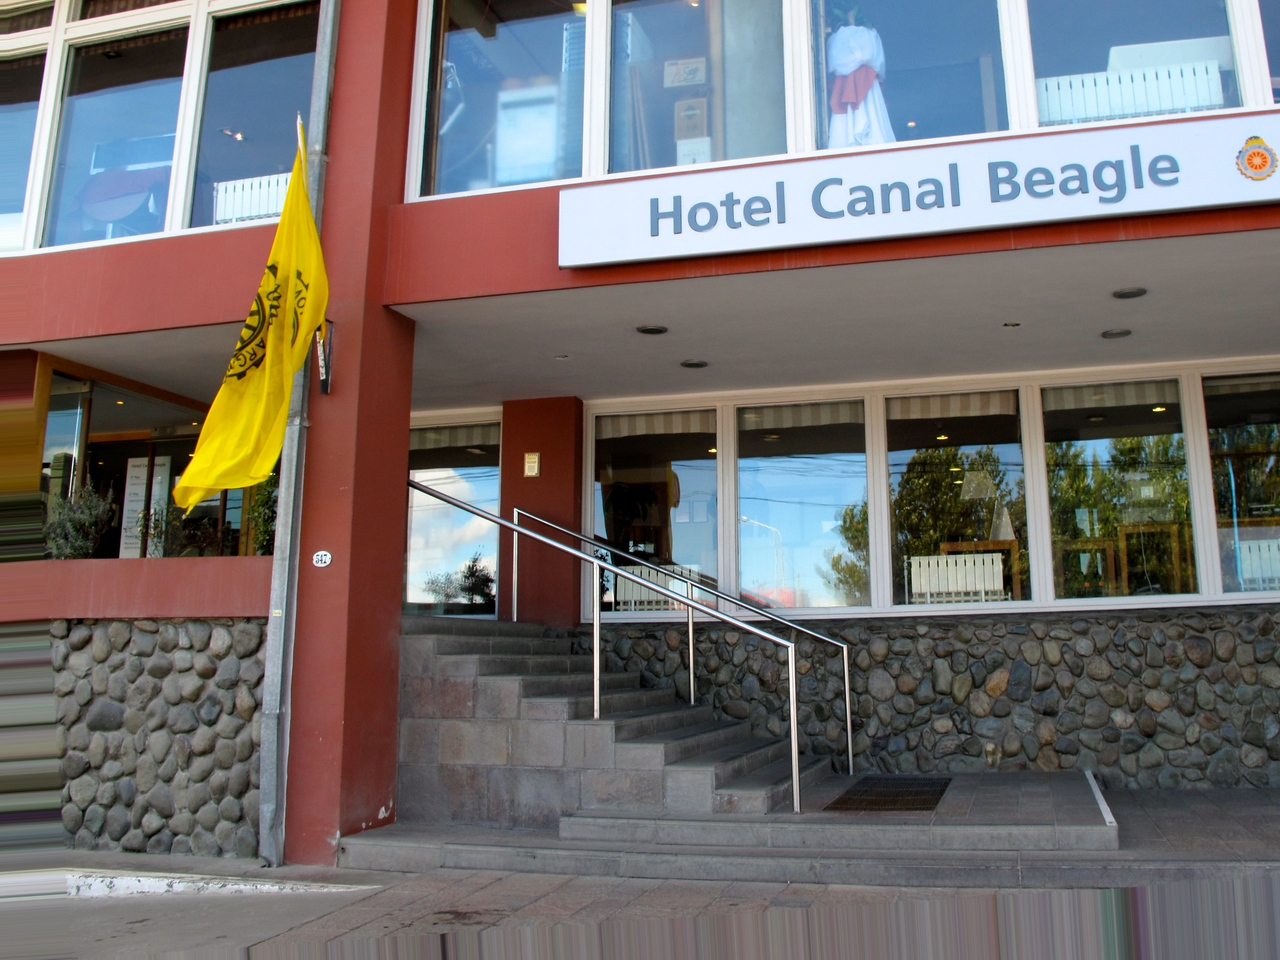 The Hotel Canal Beagle is where we began our Antarctic odyssey.  After arriving in Ushuaia in the mid-afternoon, we stayed here overnight for our departure the next day.